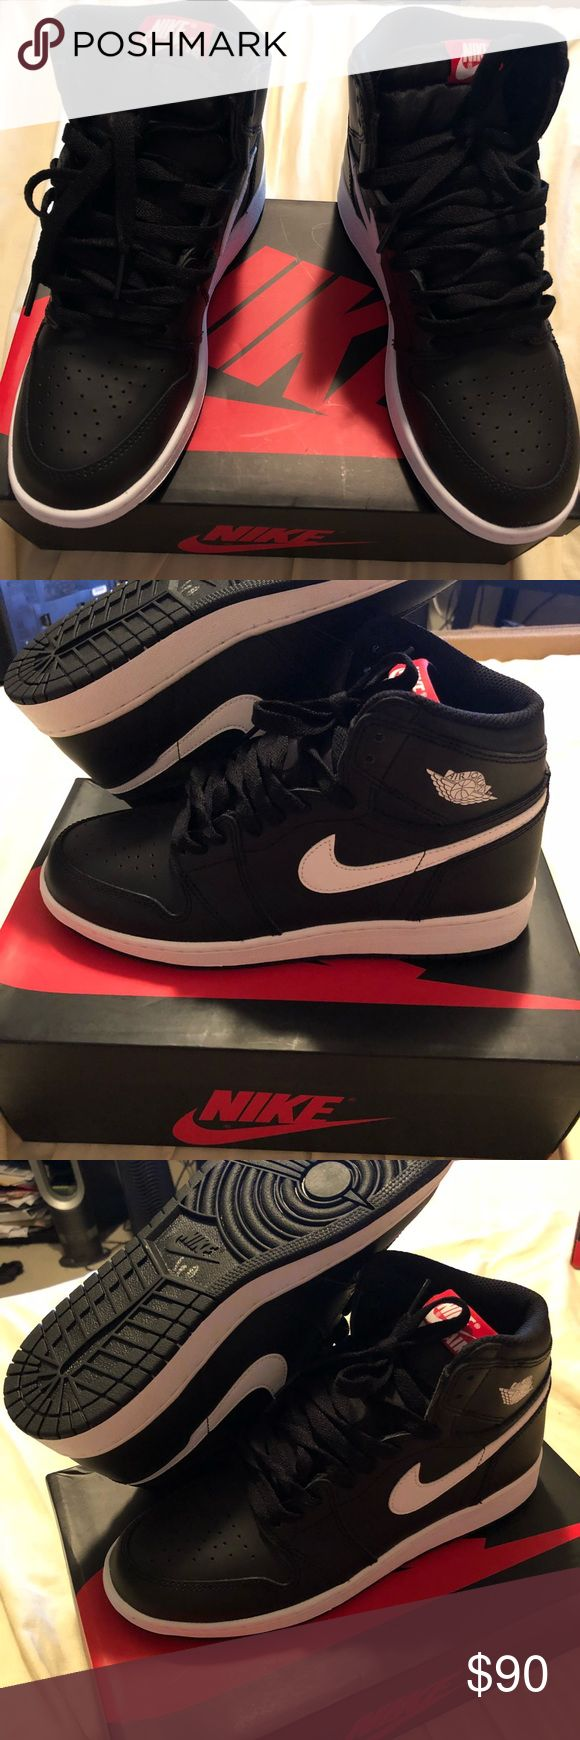 "Air Jordan 1 Retro High OG BG ""Yin Yang"" These shoes have never been worn and come with original box. Nike Shoes Sneakers"